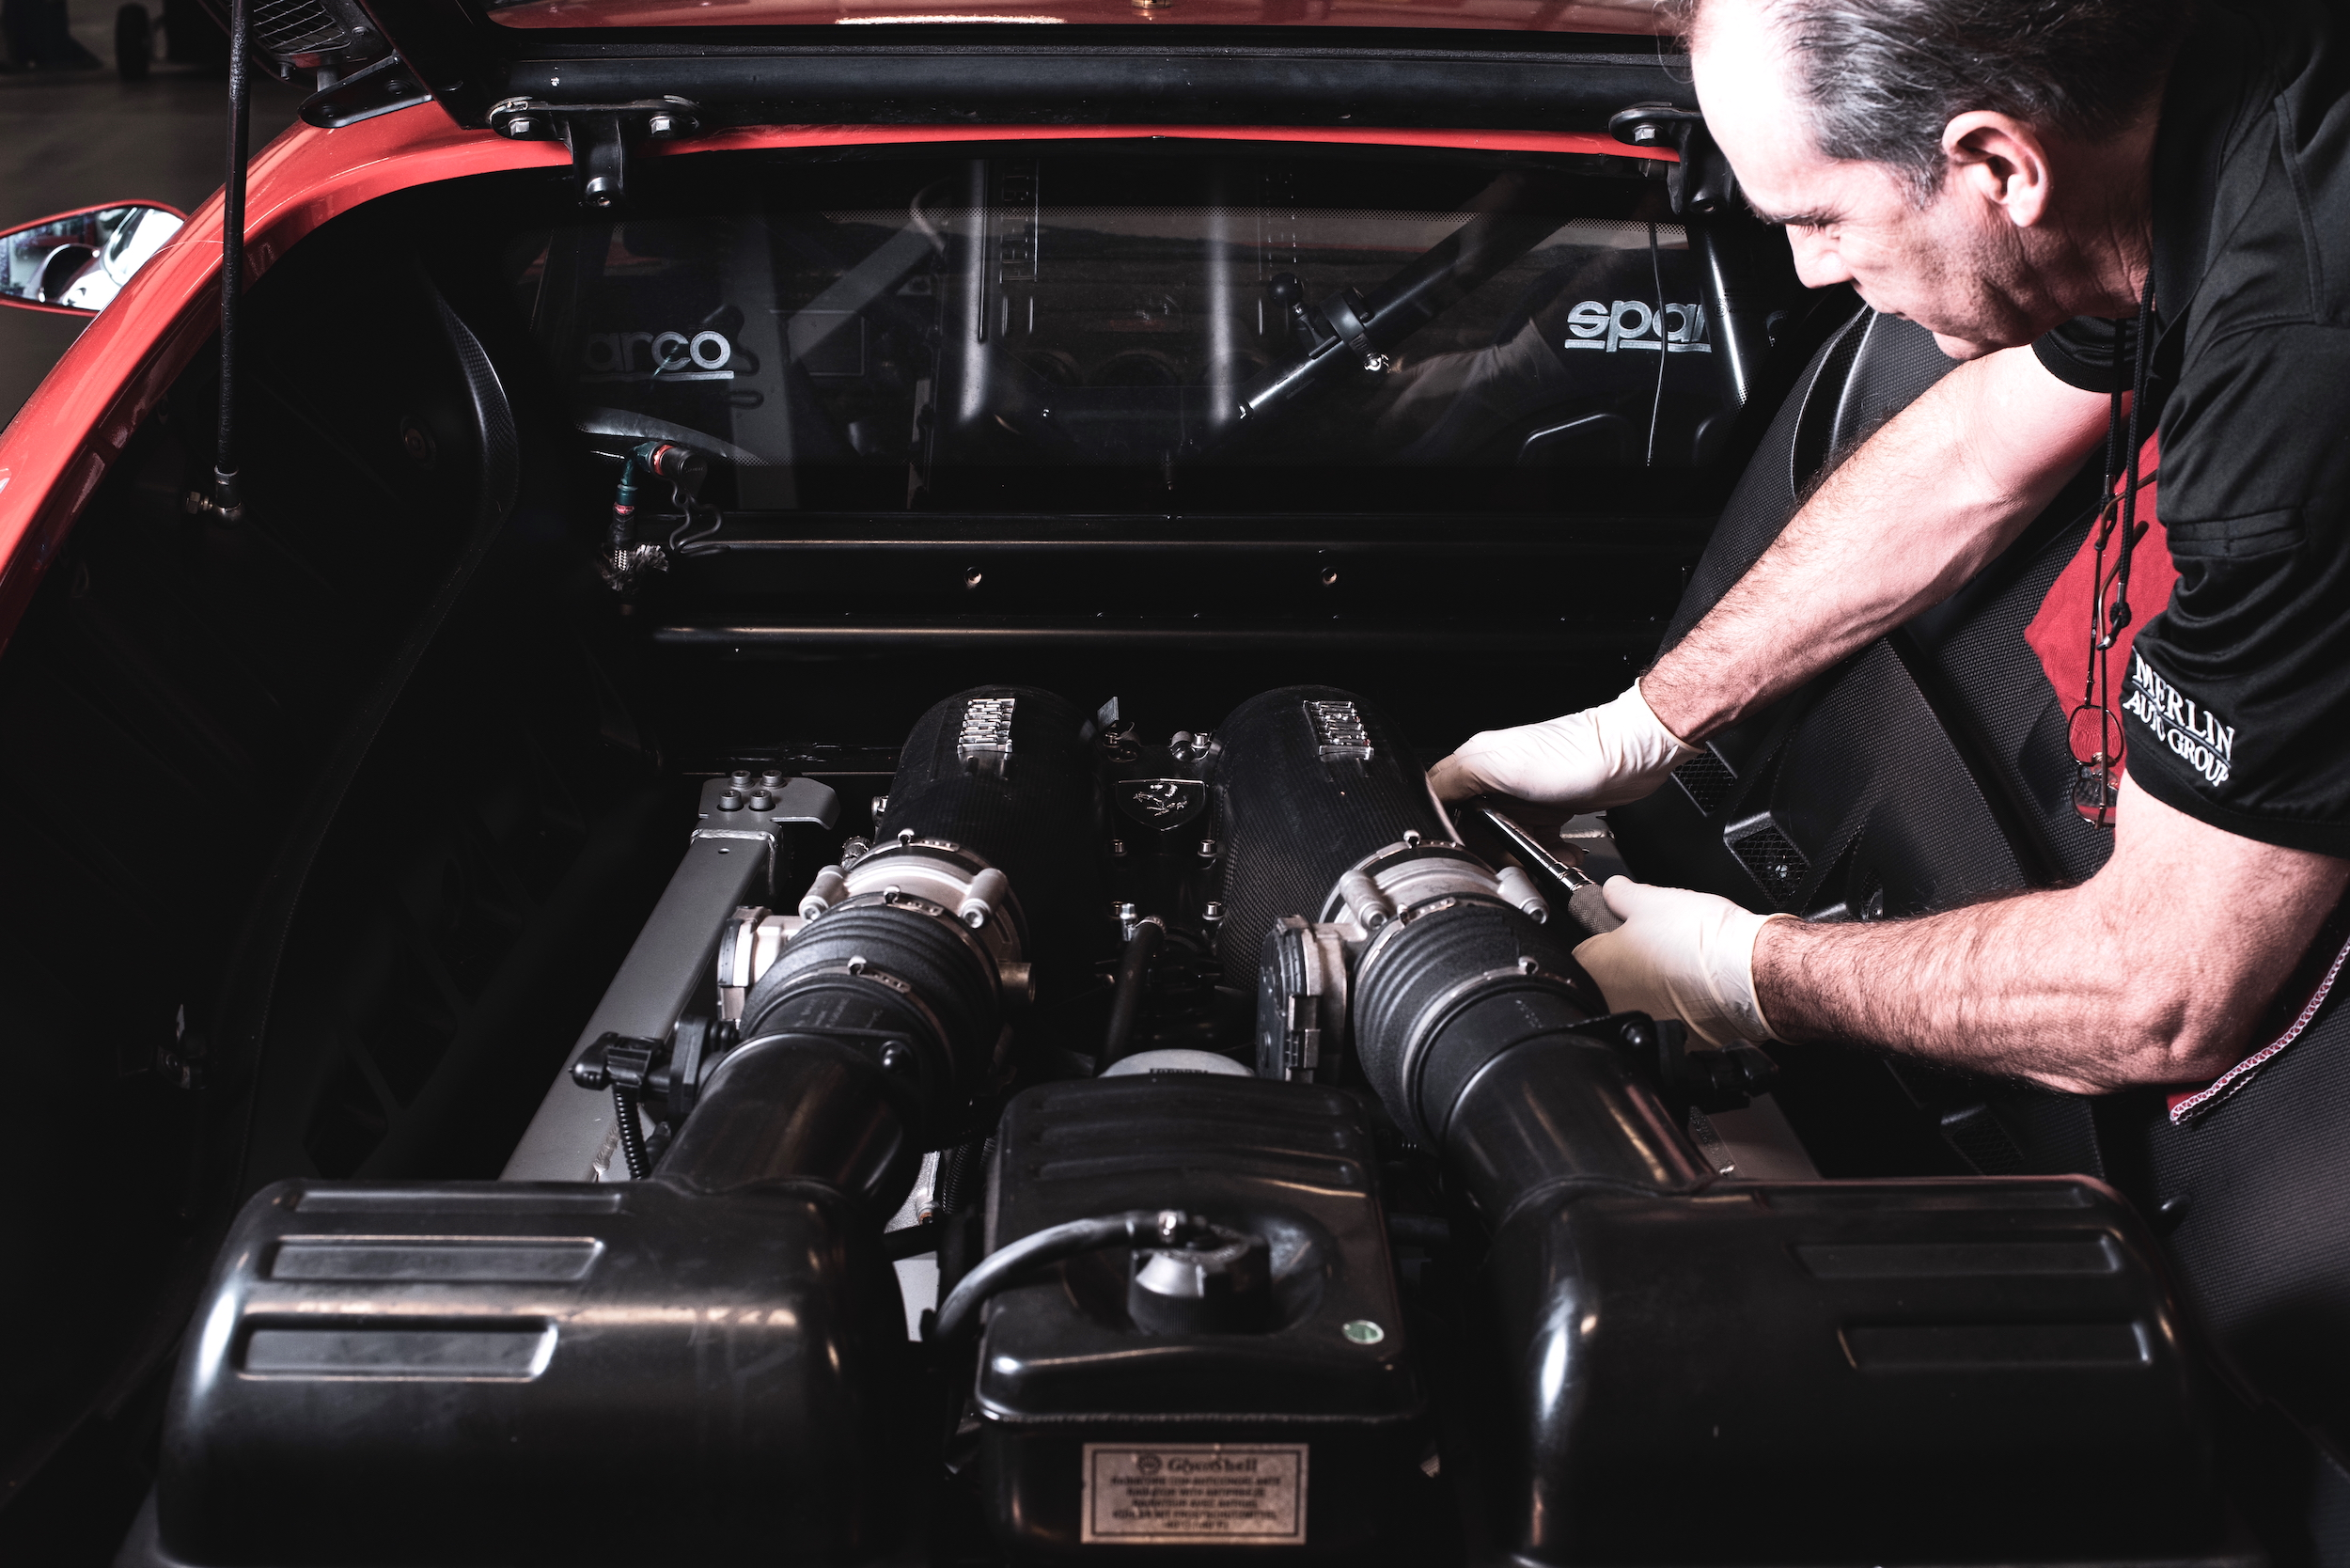 Ferrari Timing Belt Replacement Process: Nuances and Costs